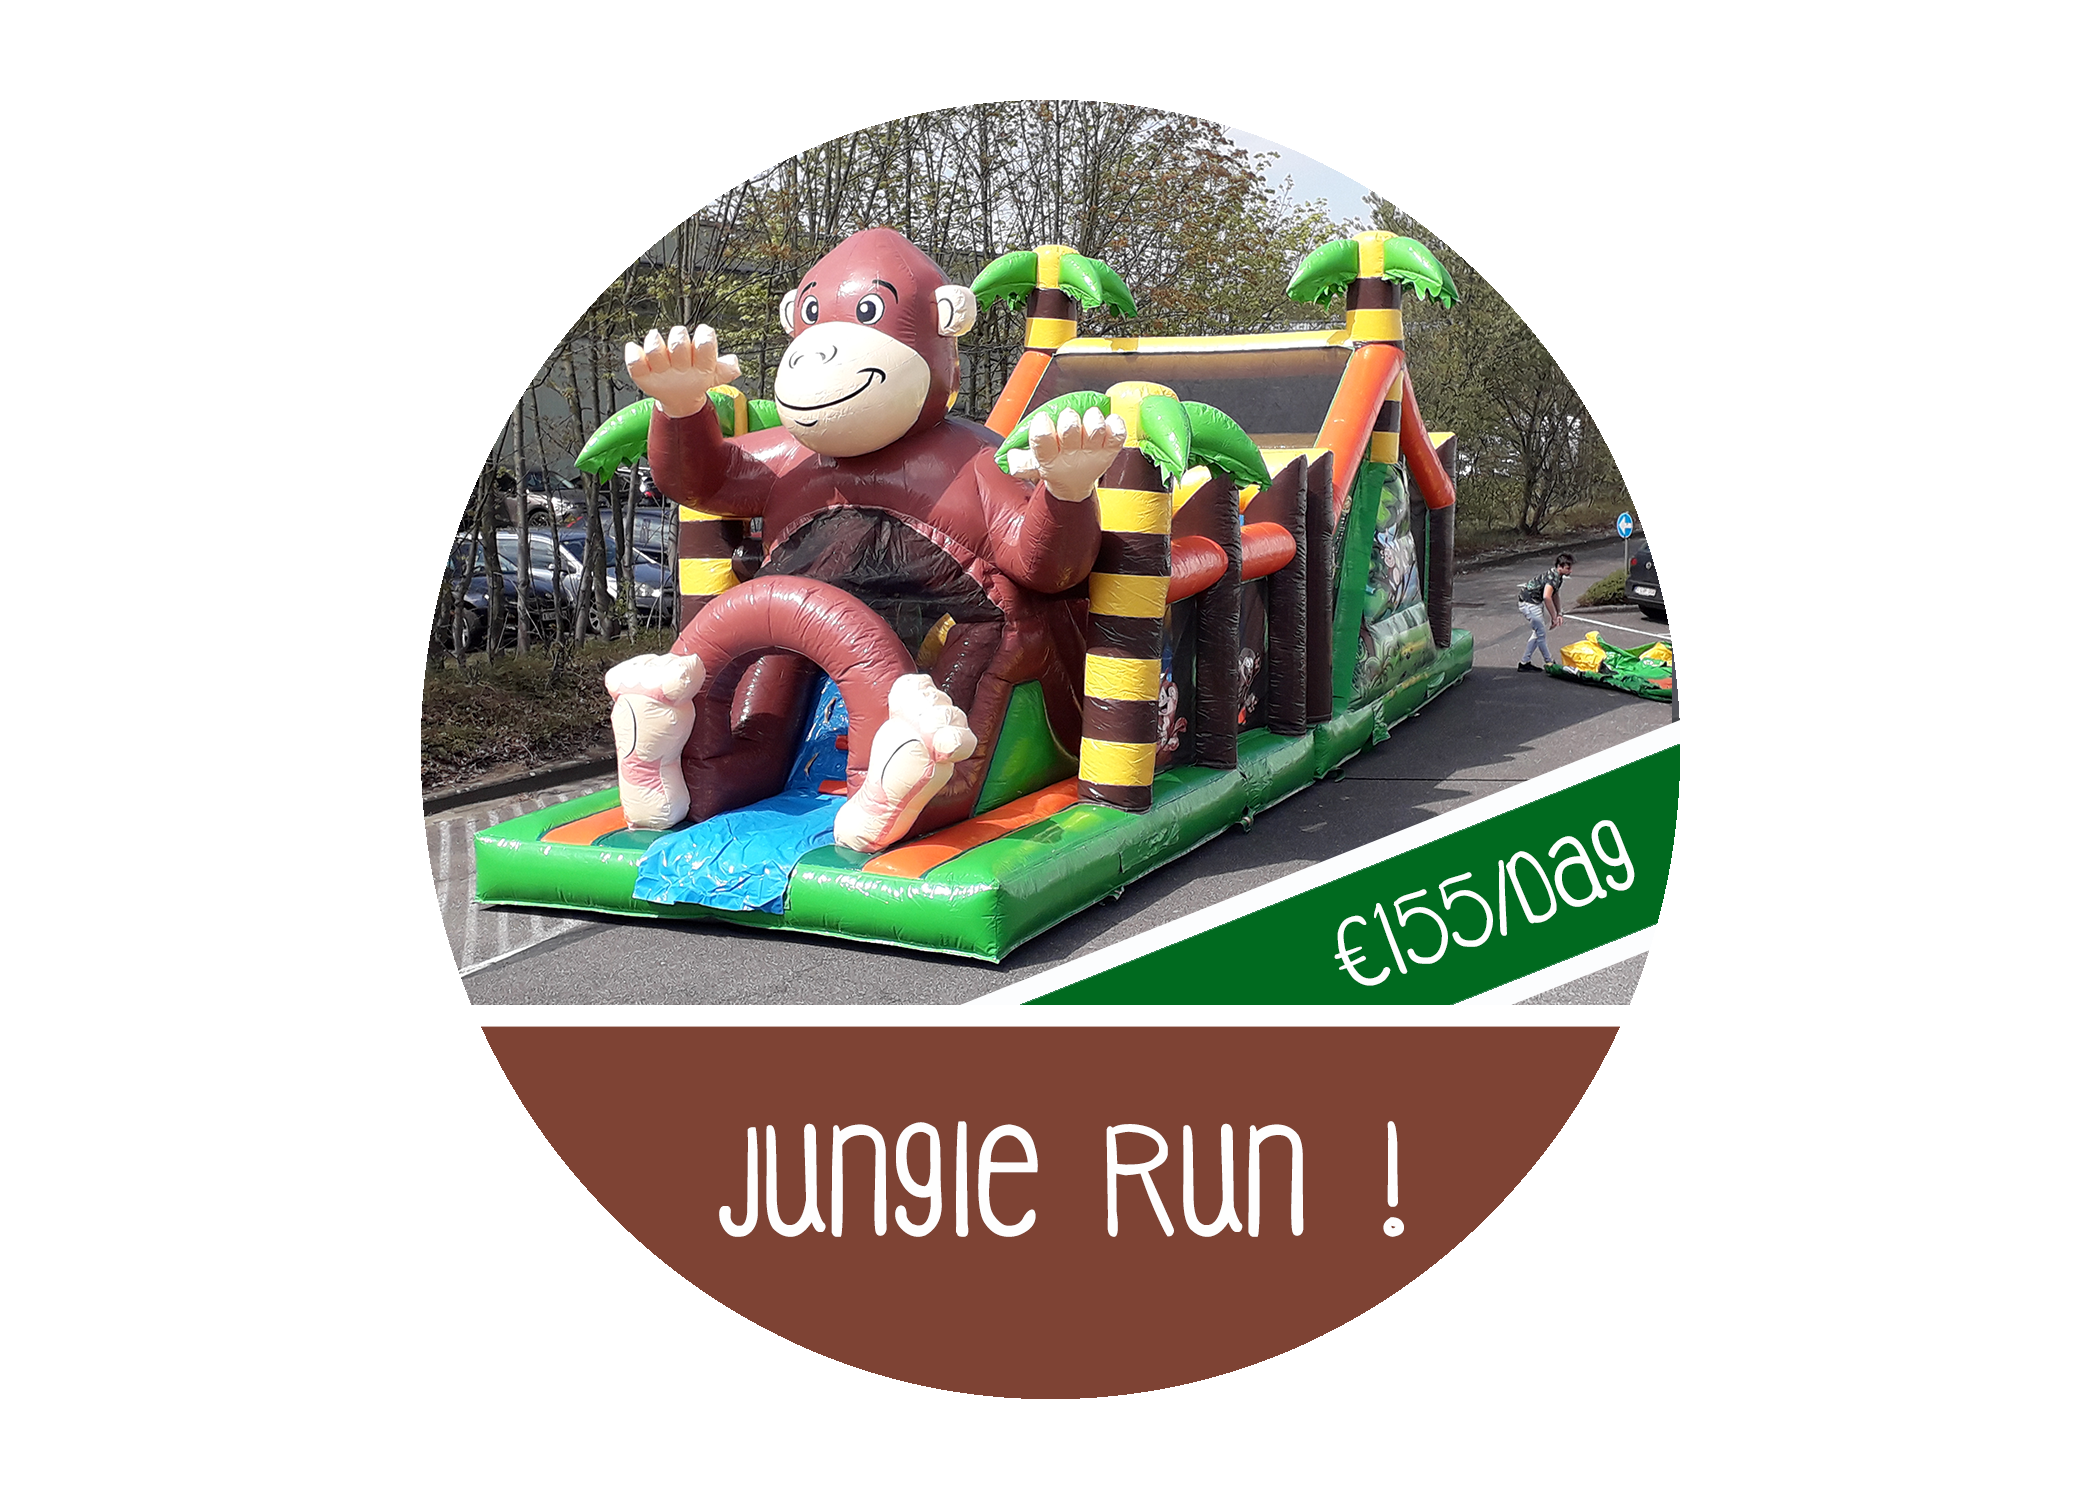 Jungle run hindernissenbaan huren antwerpen